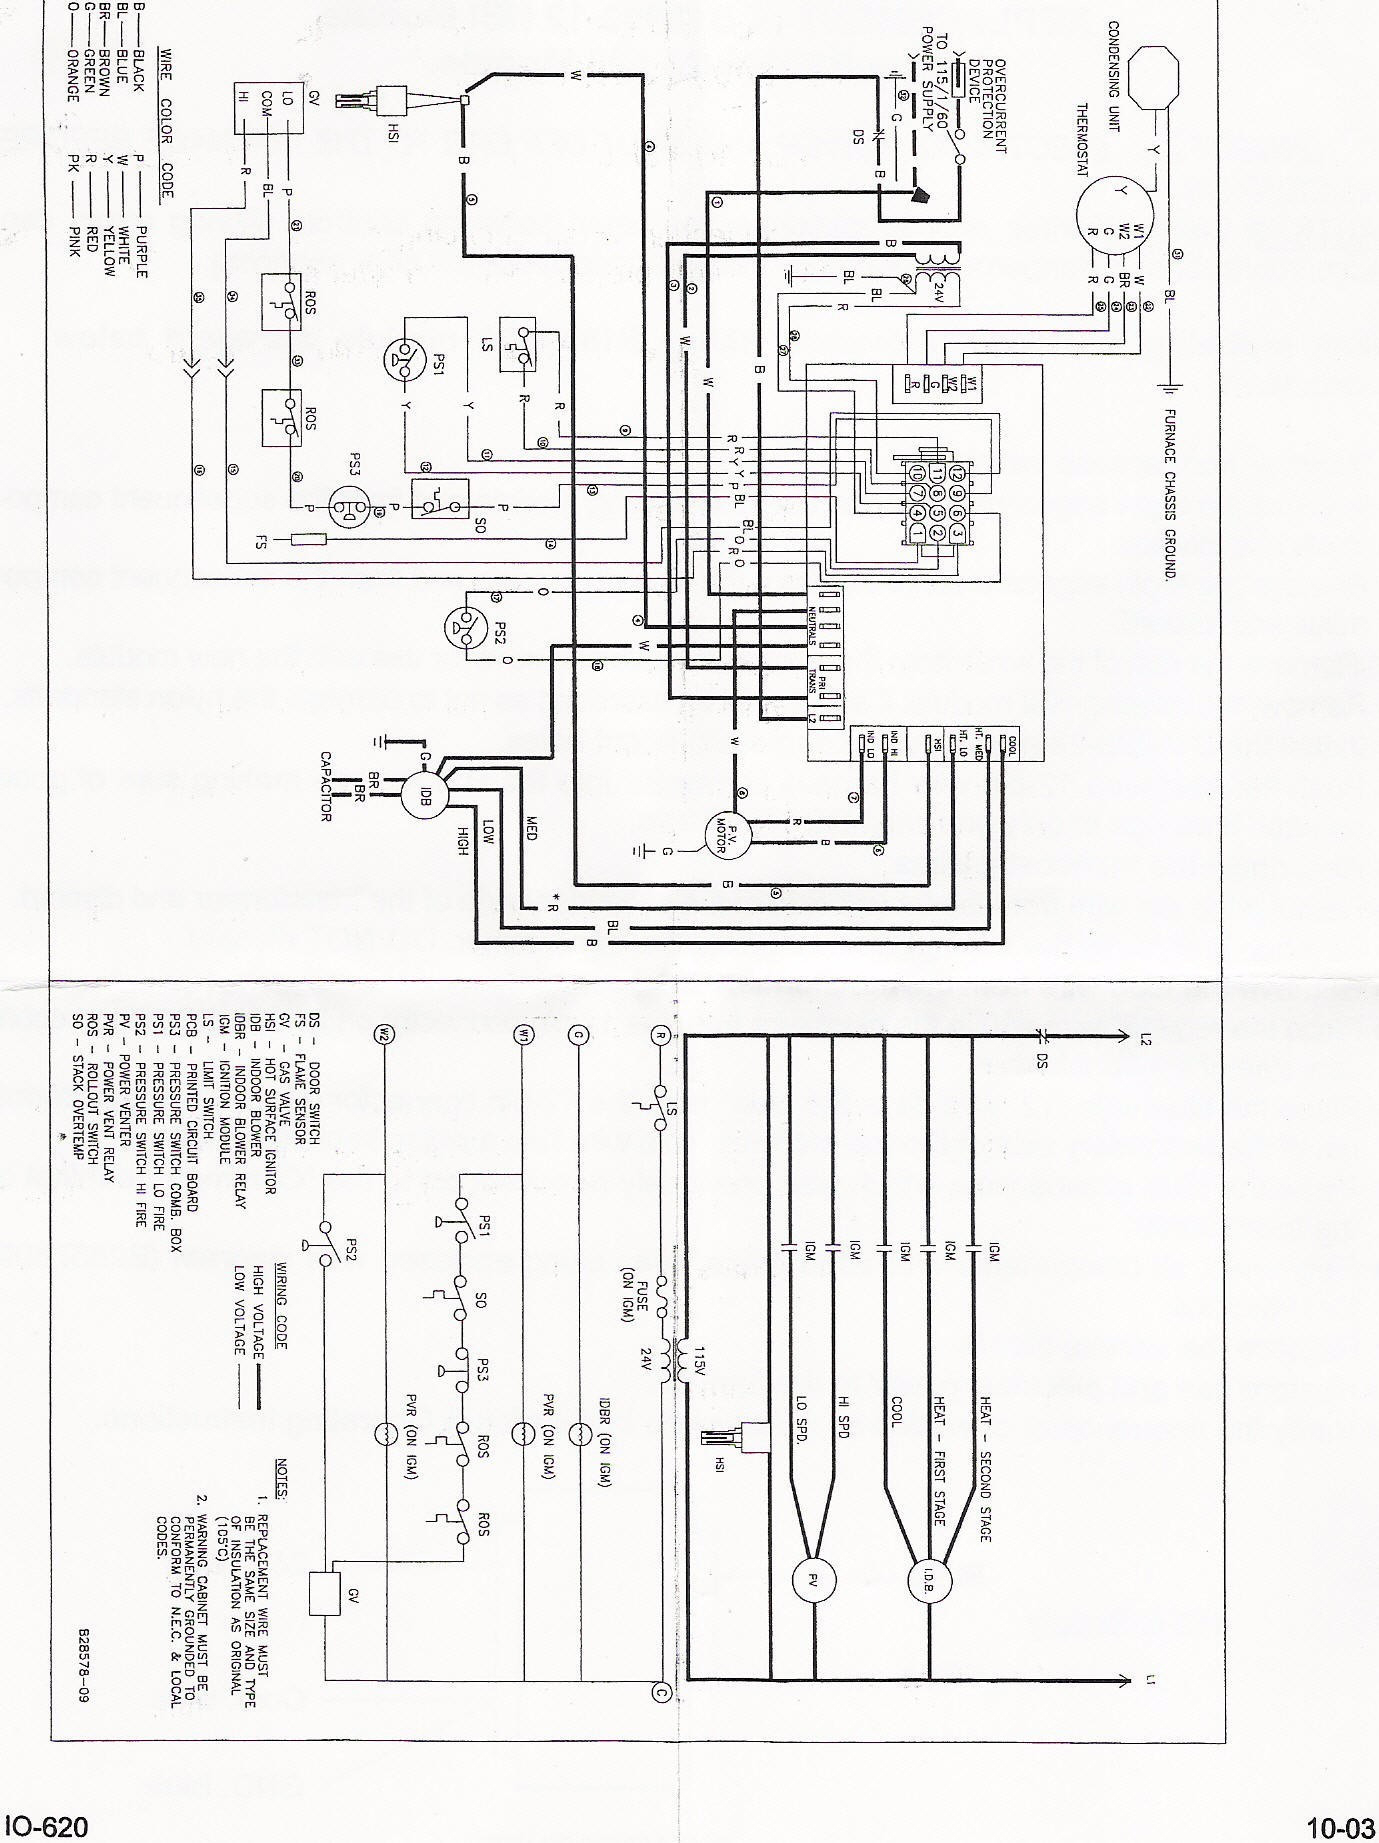 Goodman Package Unit Wiring Diagram Fresh Goodman Indoor Unit - Goodman Package Unit Wiring Diagram